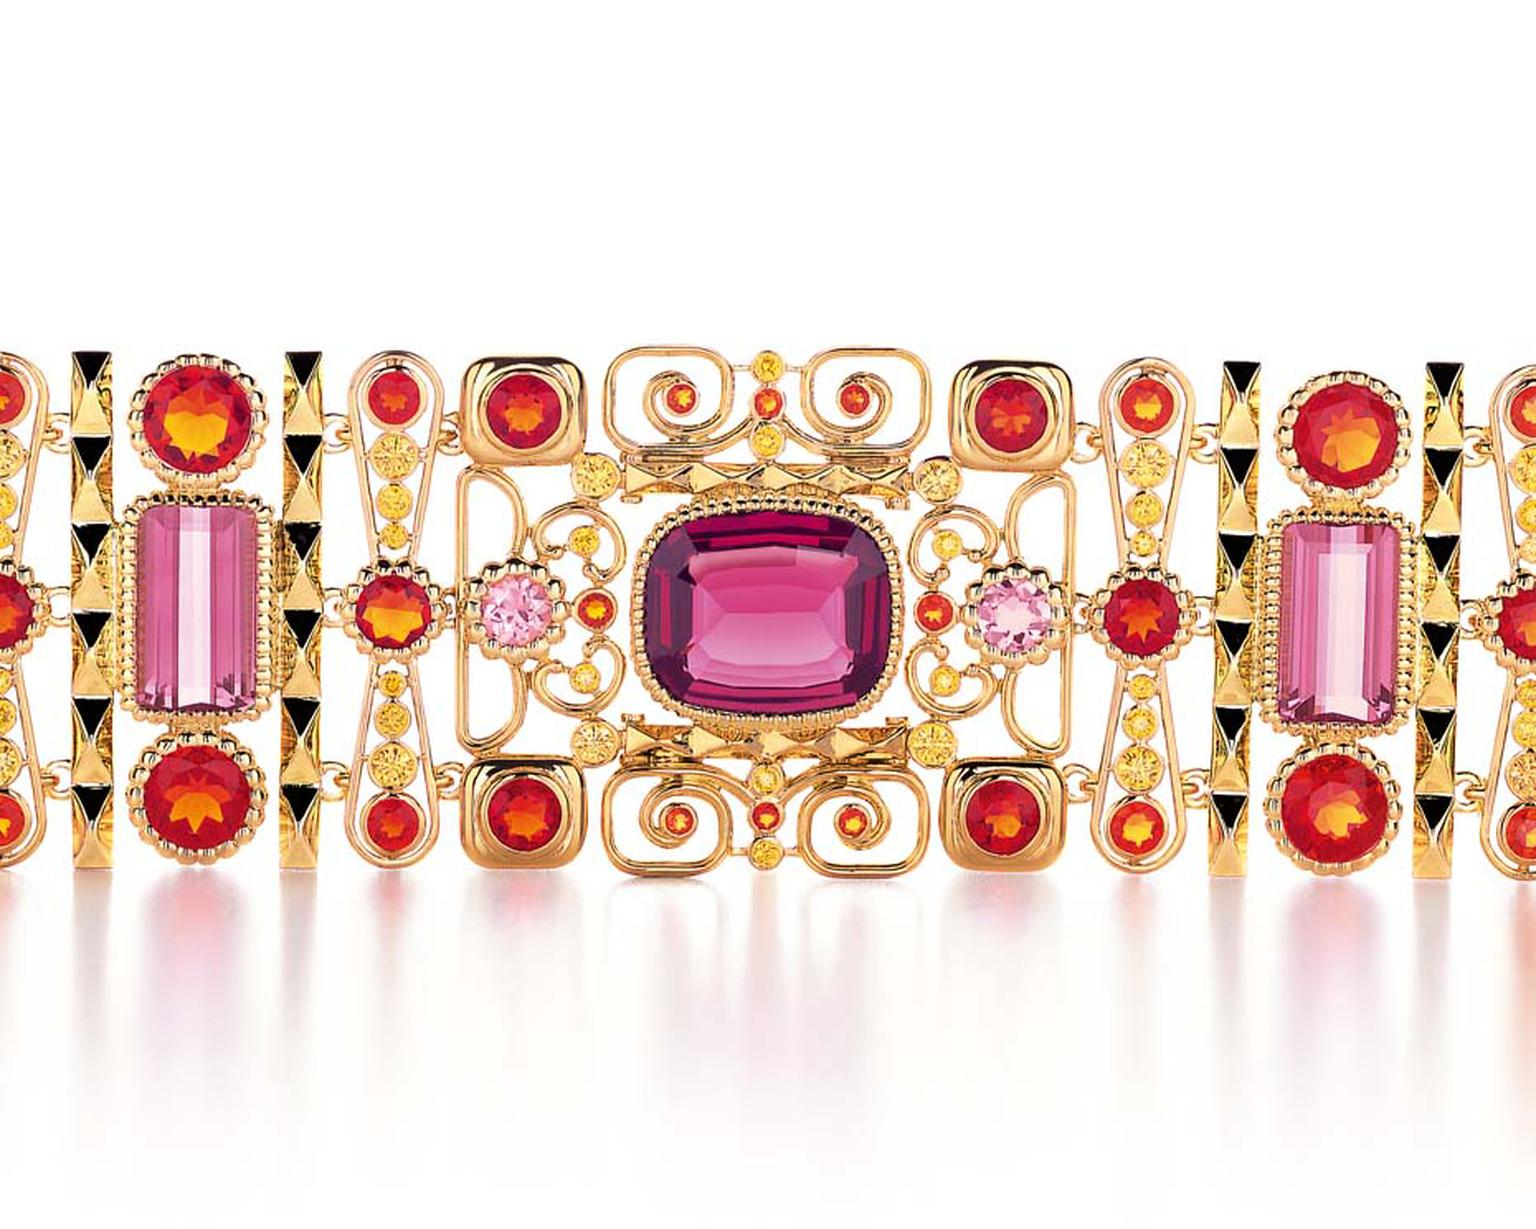 Tiffany & Co. Blue Book bracelet set with fire opals, yellow diamonds, tourmalines and a central cushion-cut garnet.